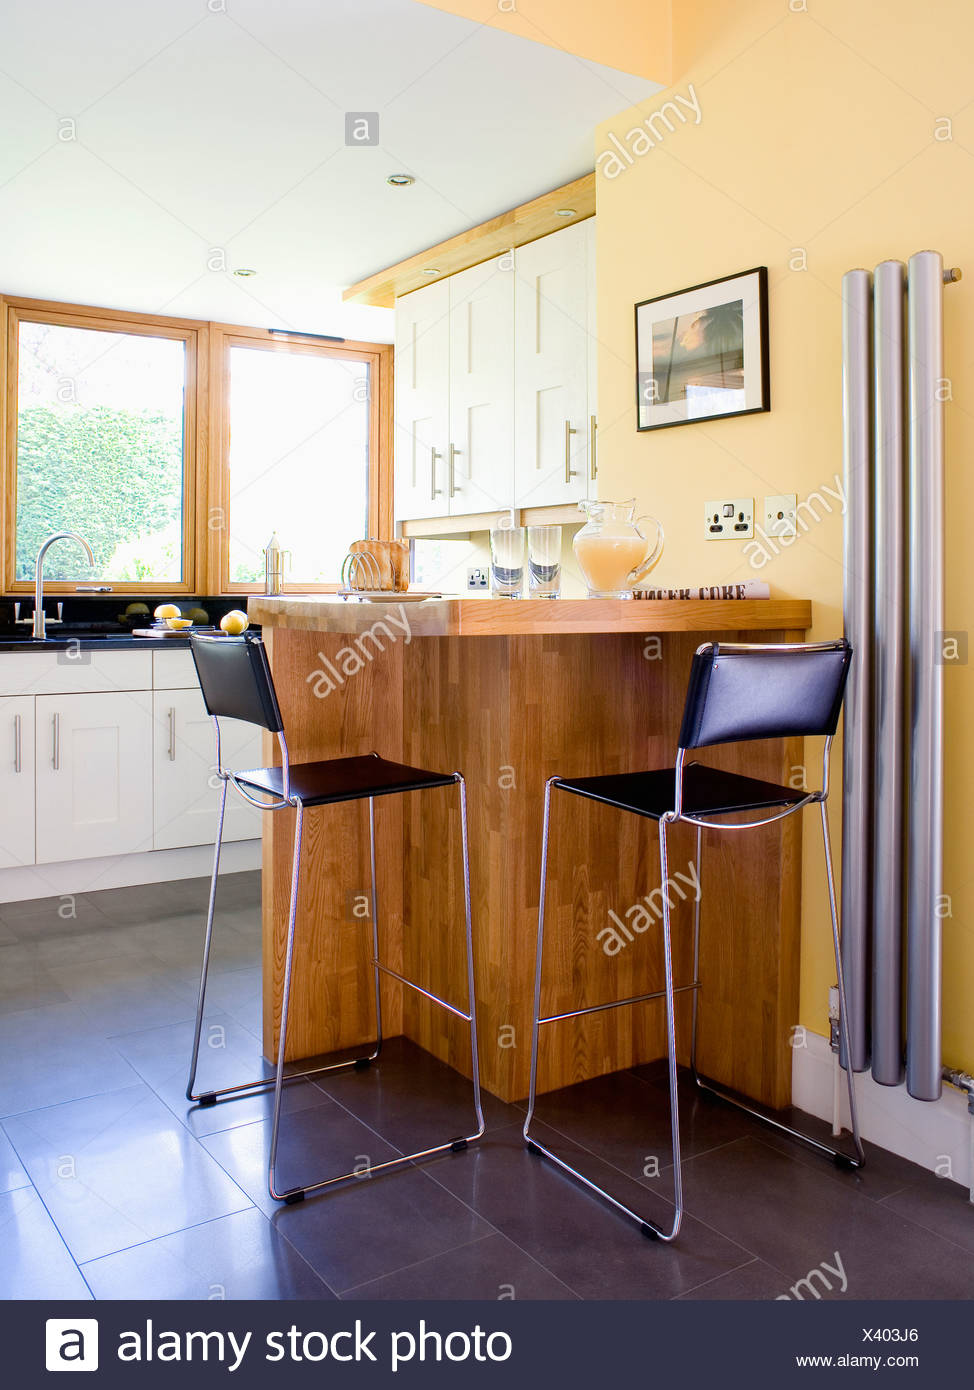 Black And Chrome Stools At Breakfast Bar In Modern Kitchen With Vertical Radiator On Wall Stock Photo Alamy